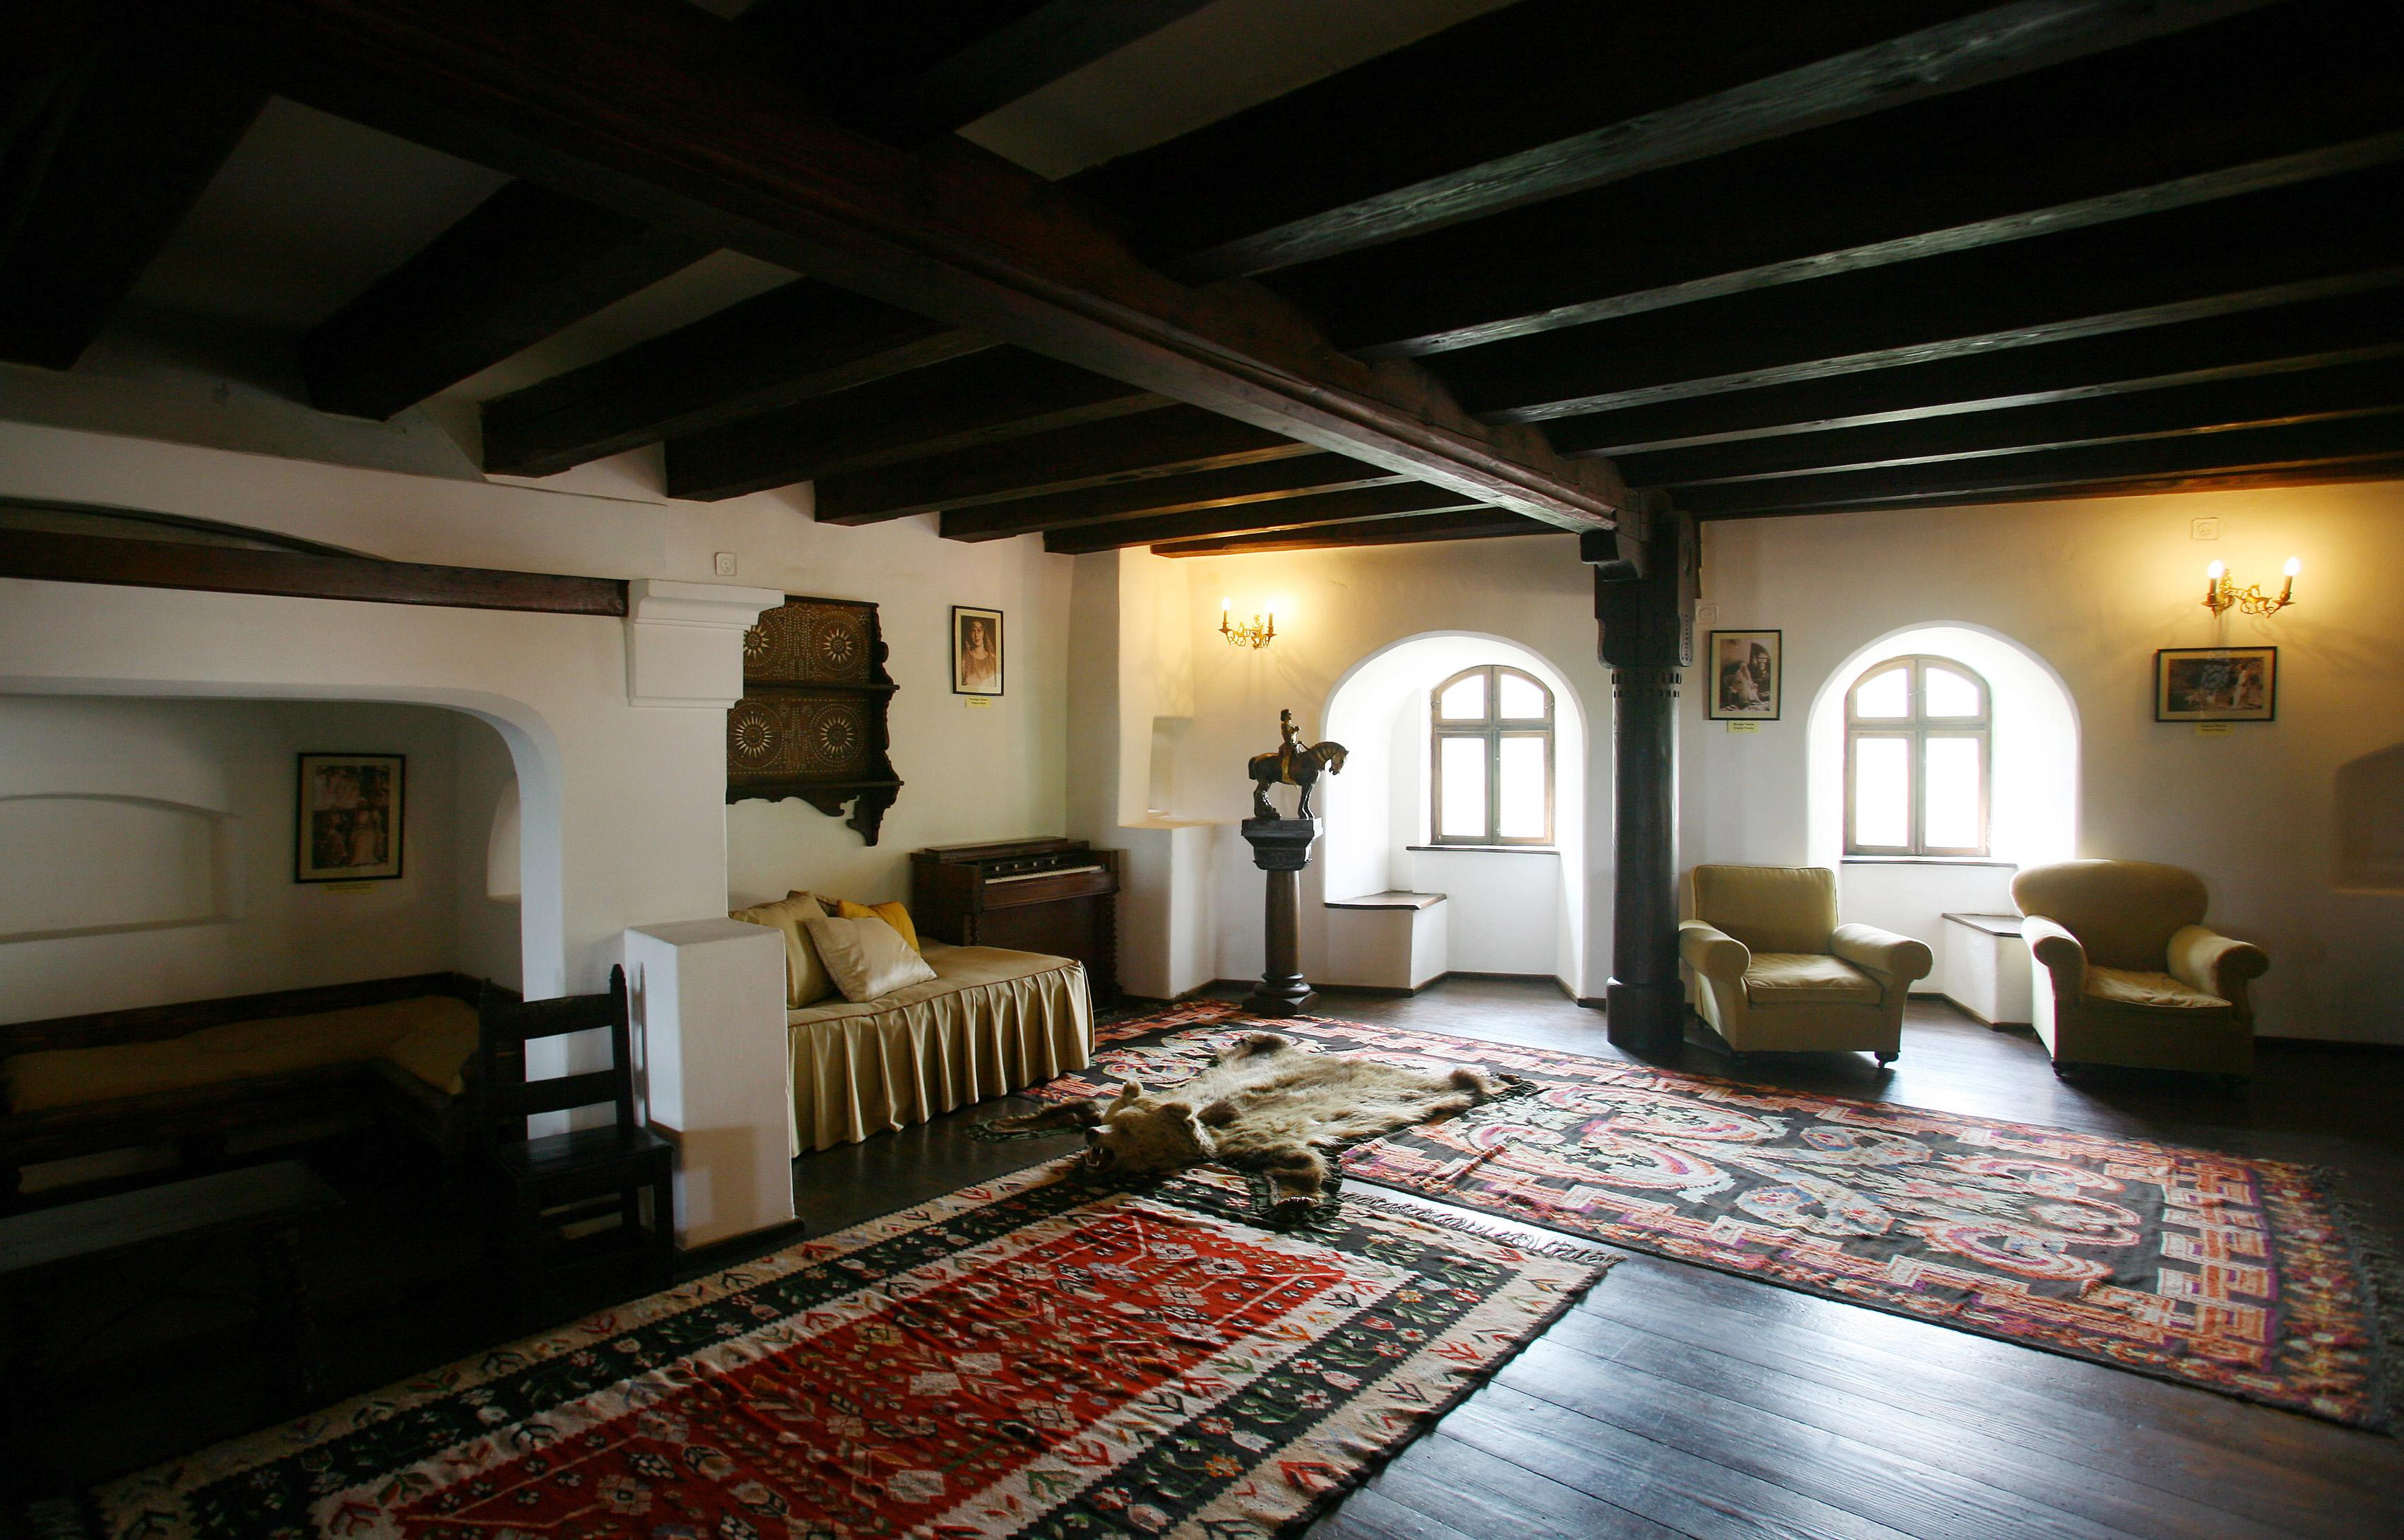 Dracula S Castle For Sale In Transylvania Tour Inside Bran Castle In Romania Photos,Easy Diy Christmas Tree Decorations